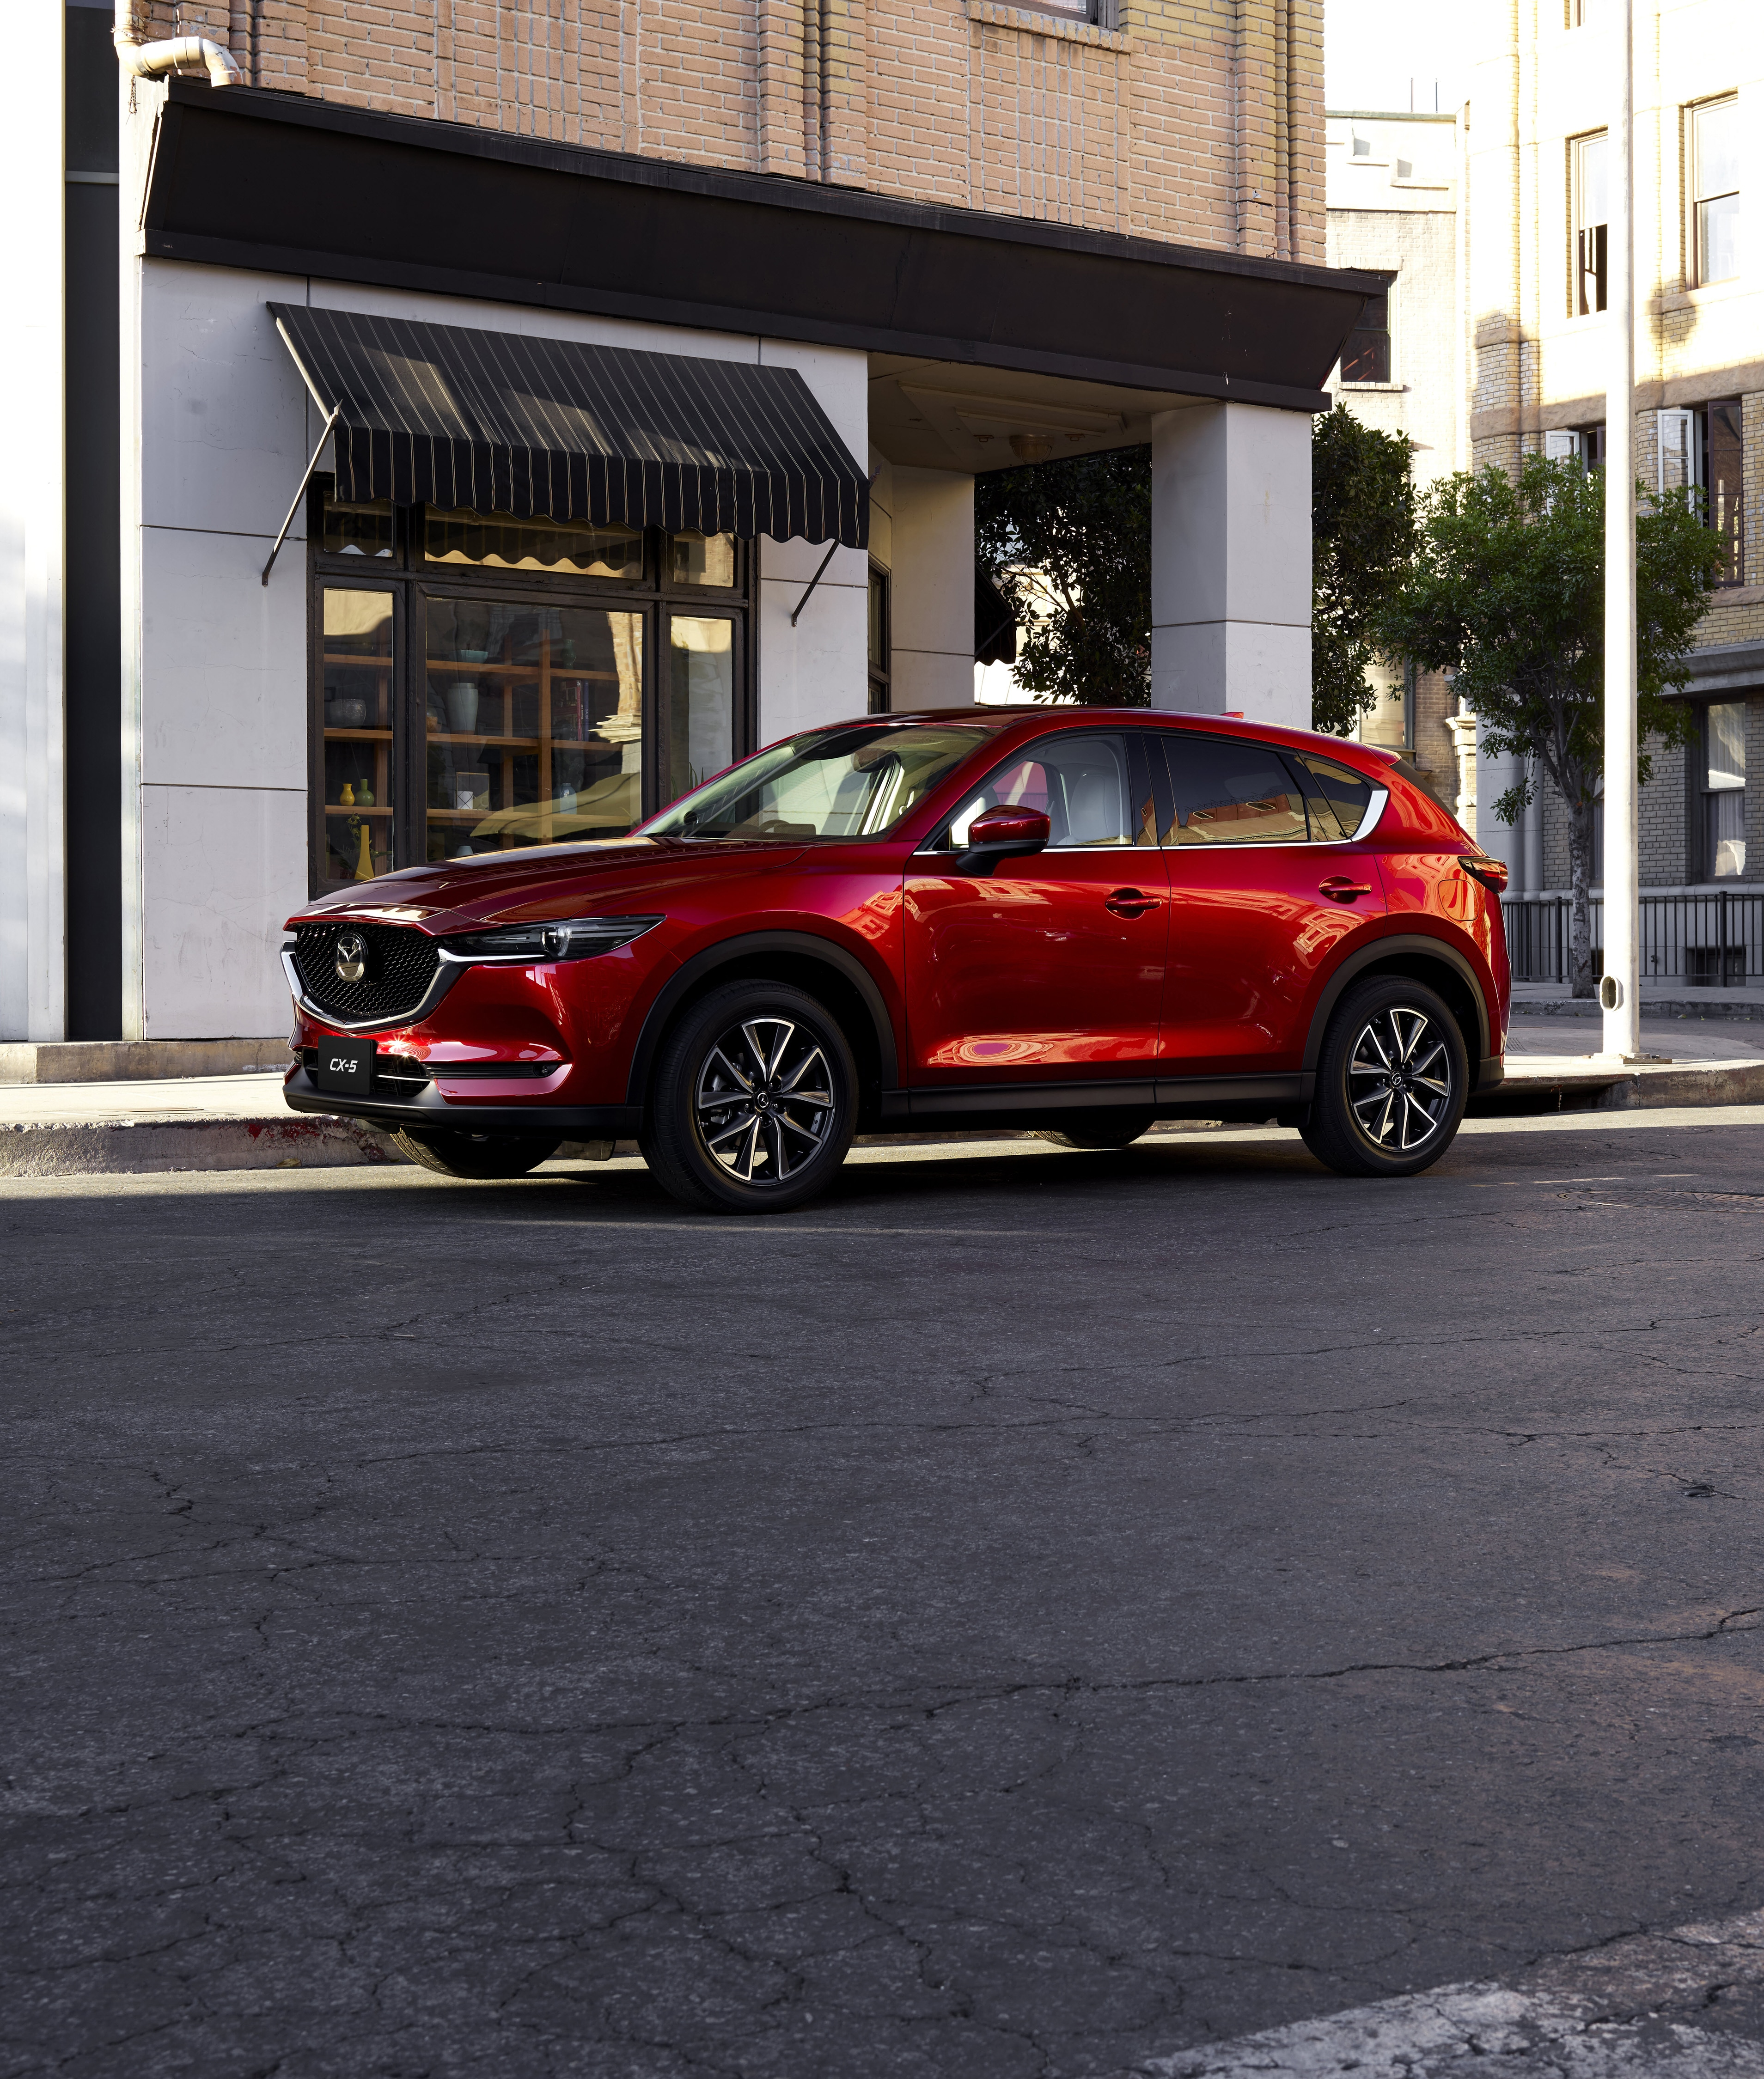 suvs dealer mazda trucks dealers used vehicles me cars minivans all featured crossovers near kingston view